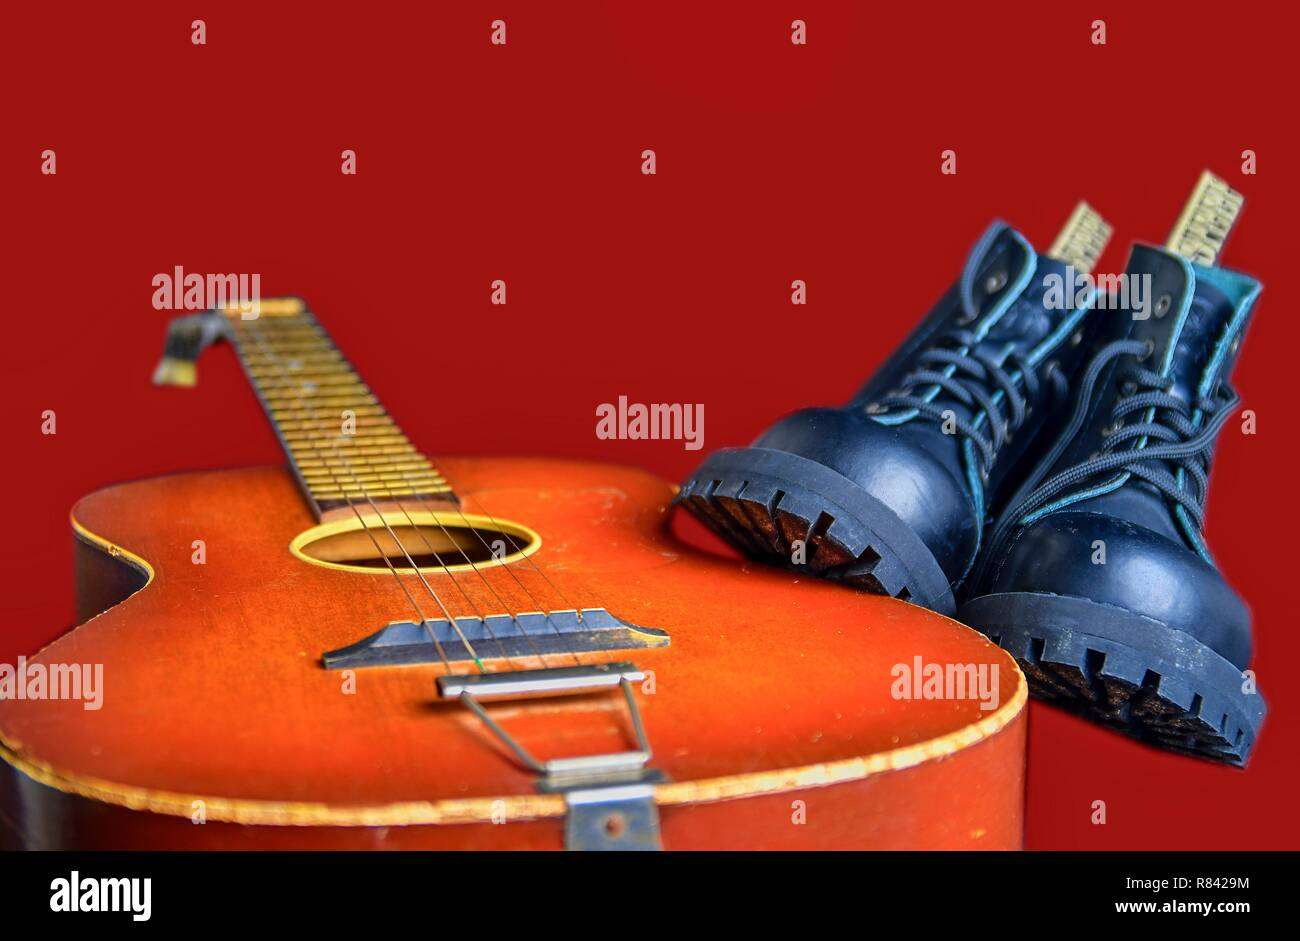 Rock and roll concept. Black boots and acoustic guitar. Rock and roll boots on claret background - Stock Image